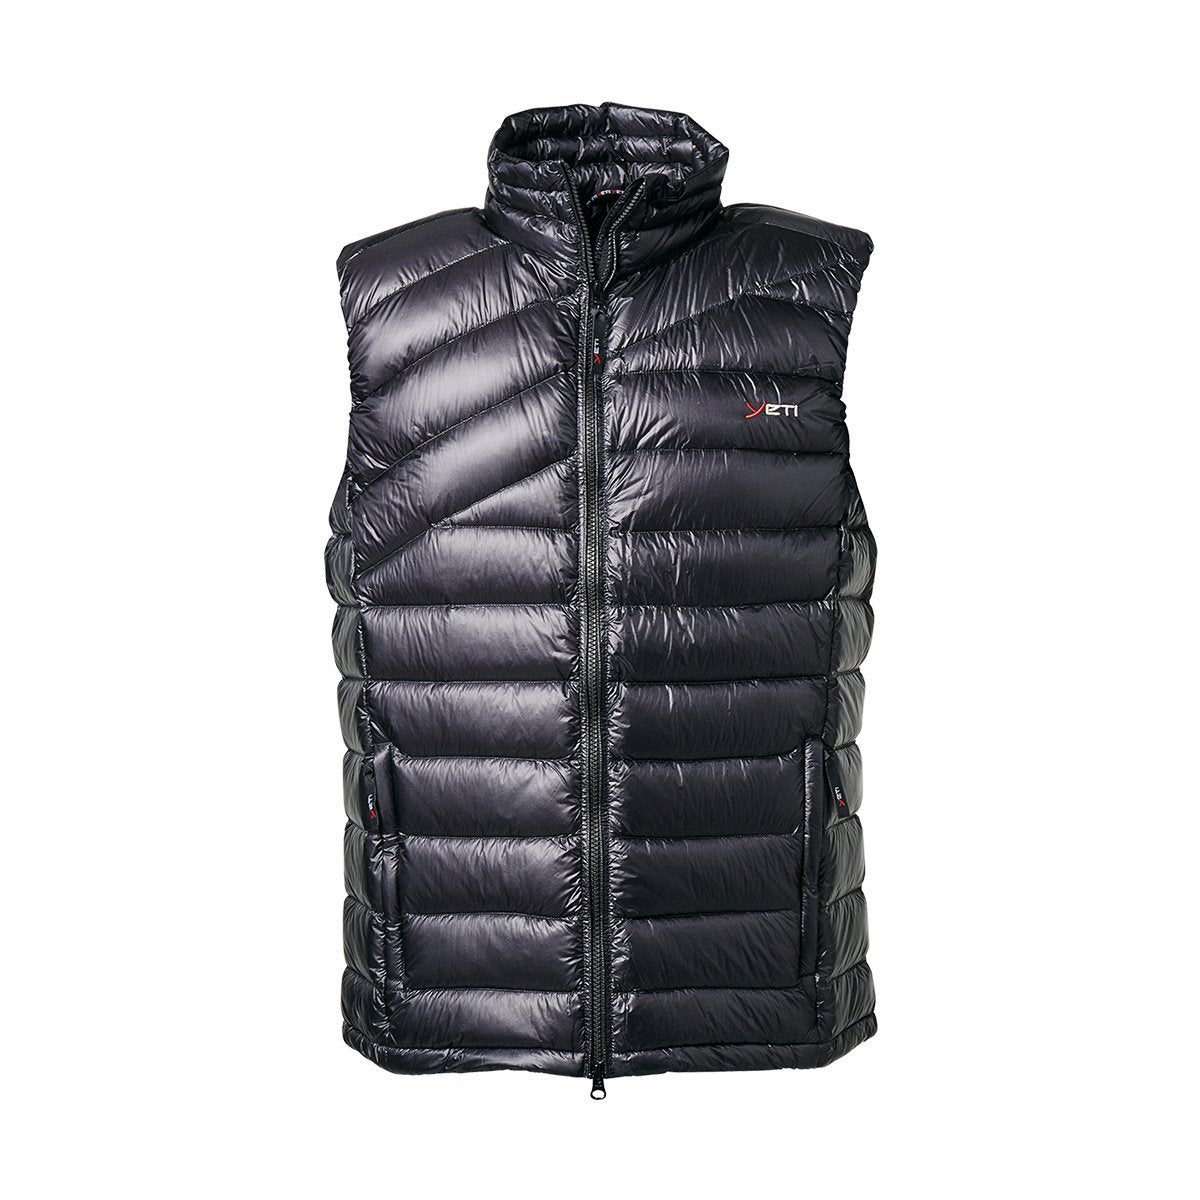 0118-M-BLACK, Yeti, Men's Solace Lightweight Down Vest, Black, Mens Padded Gilet